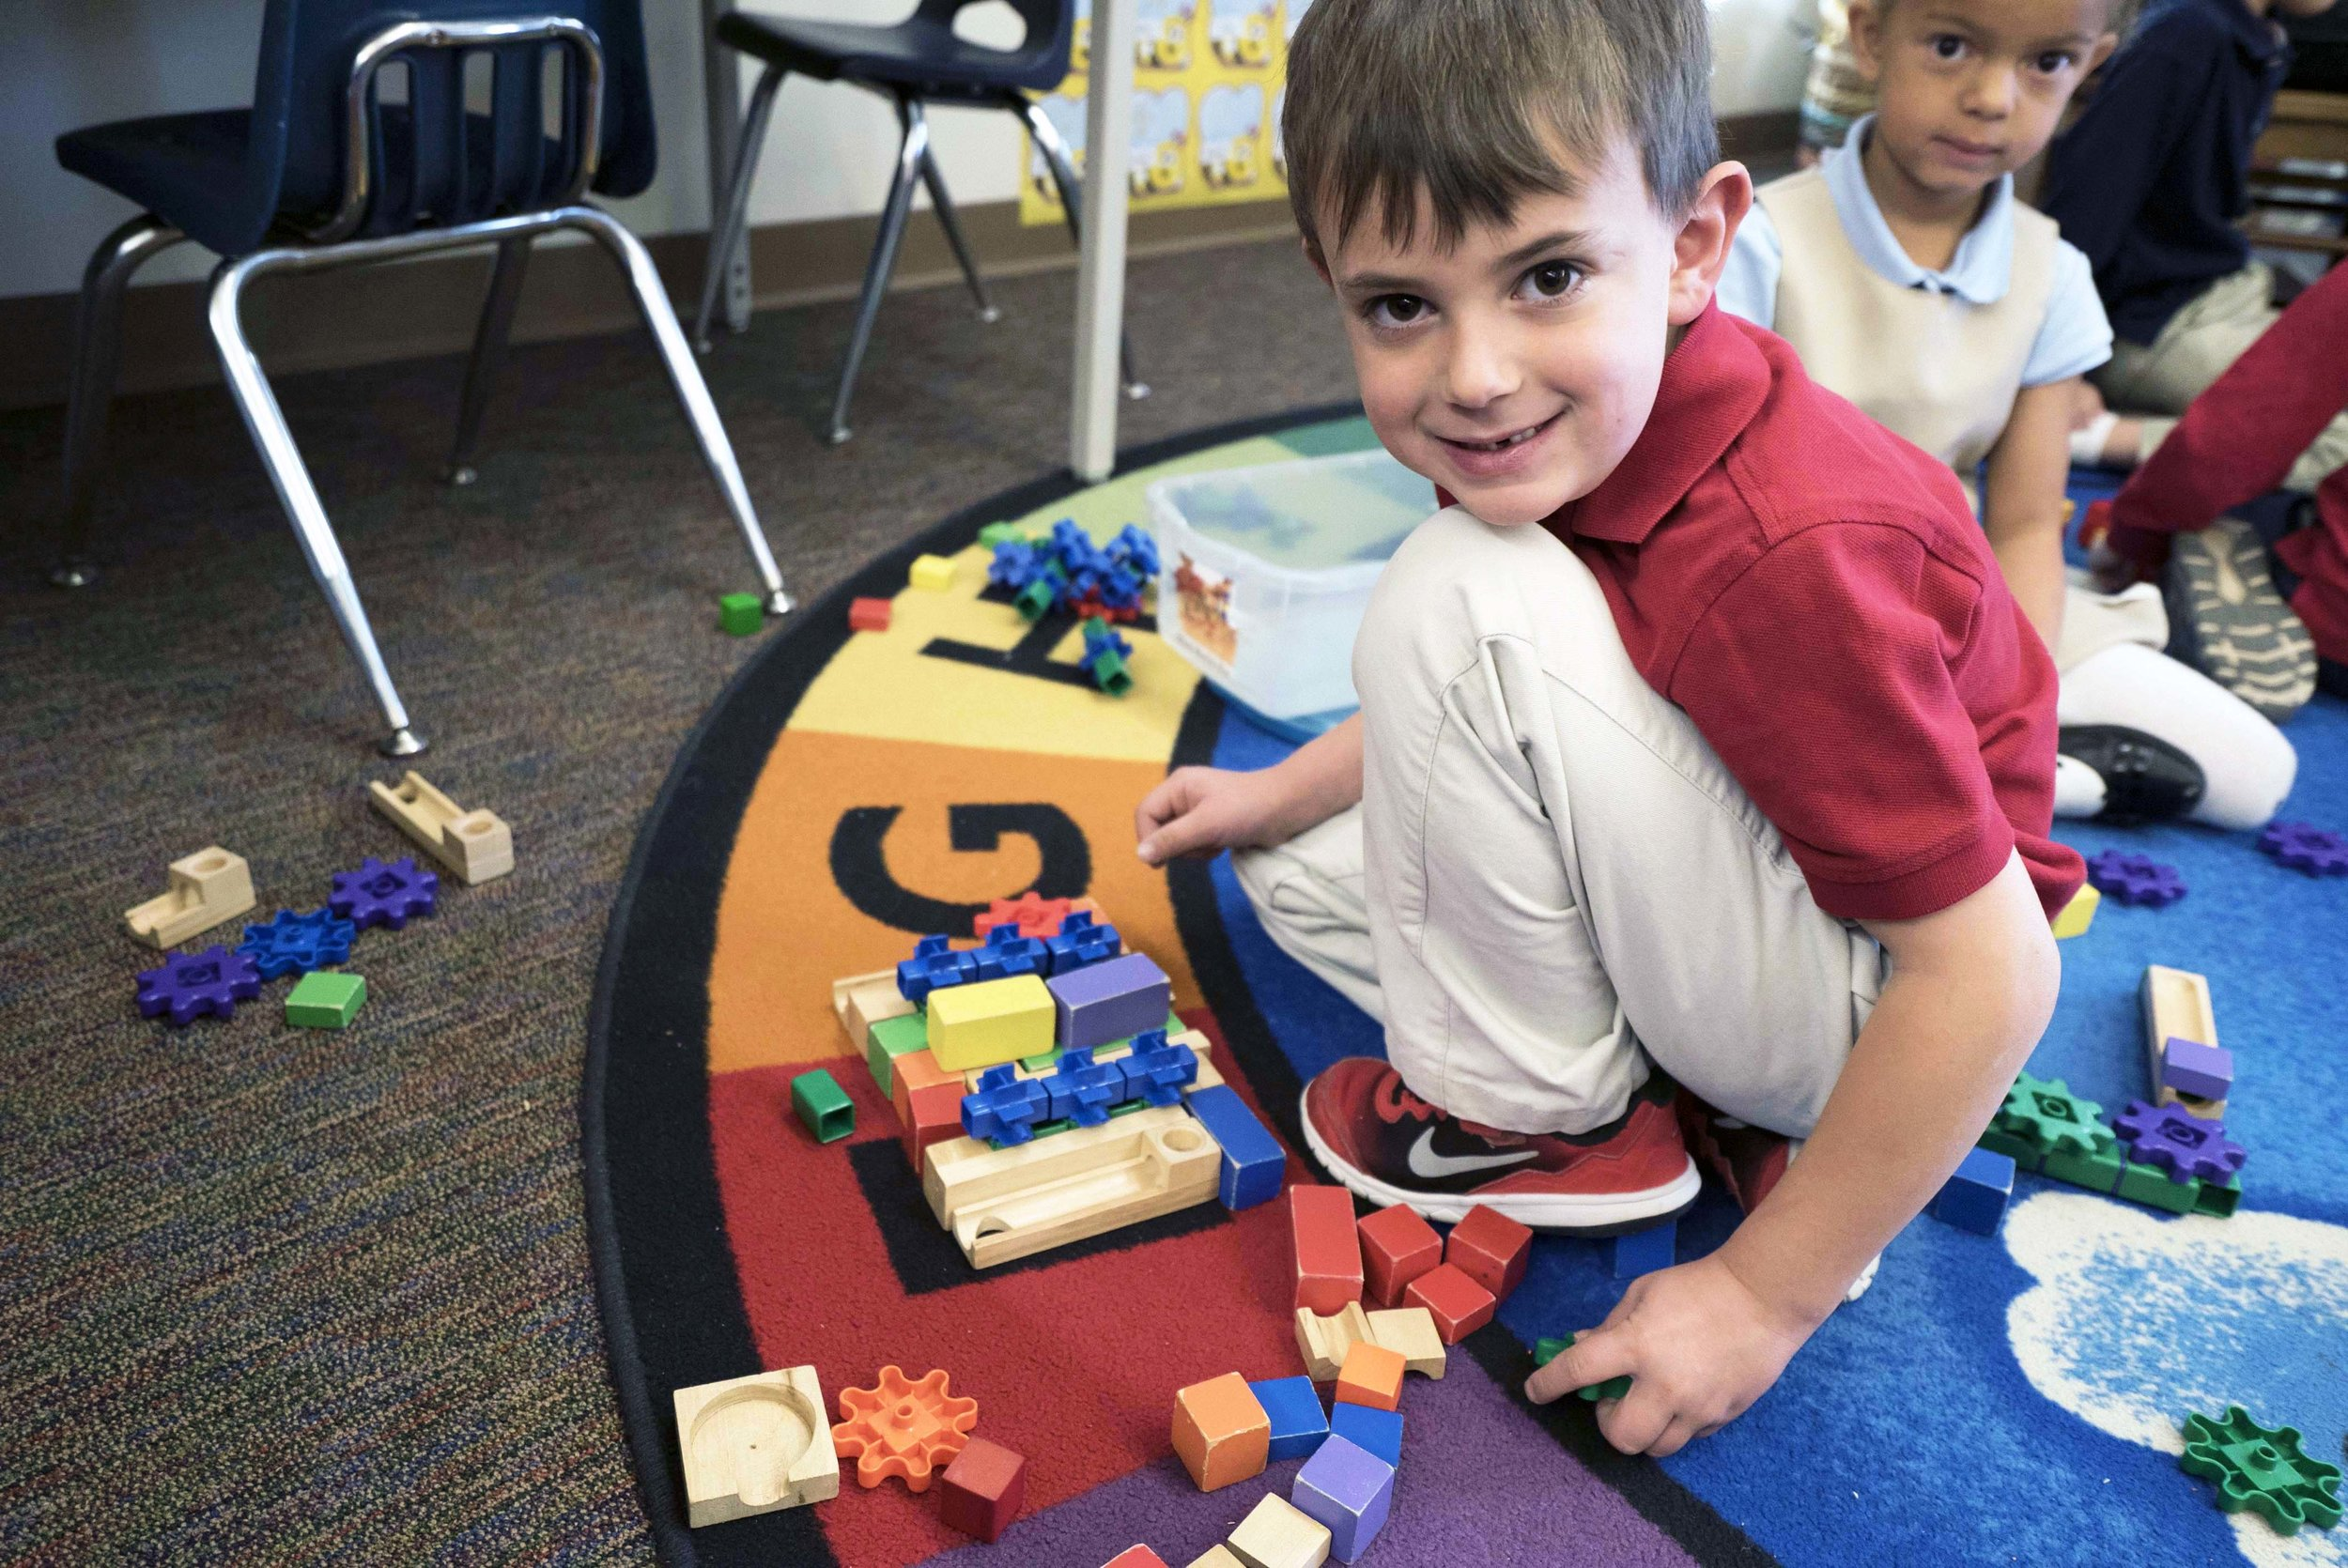 Student working with building blocks